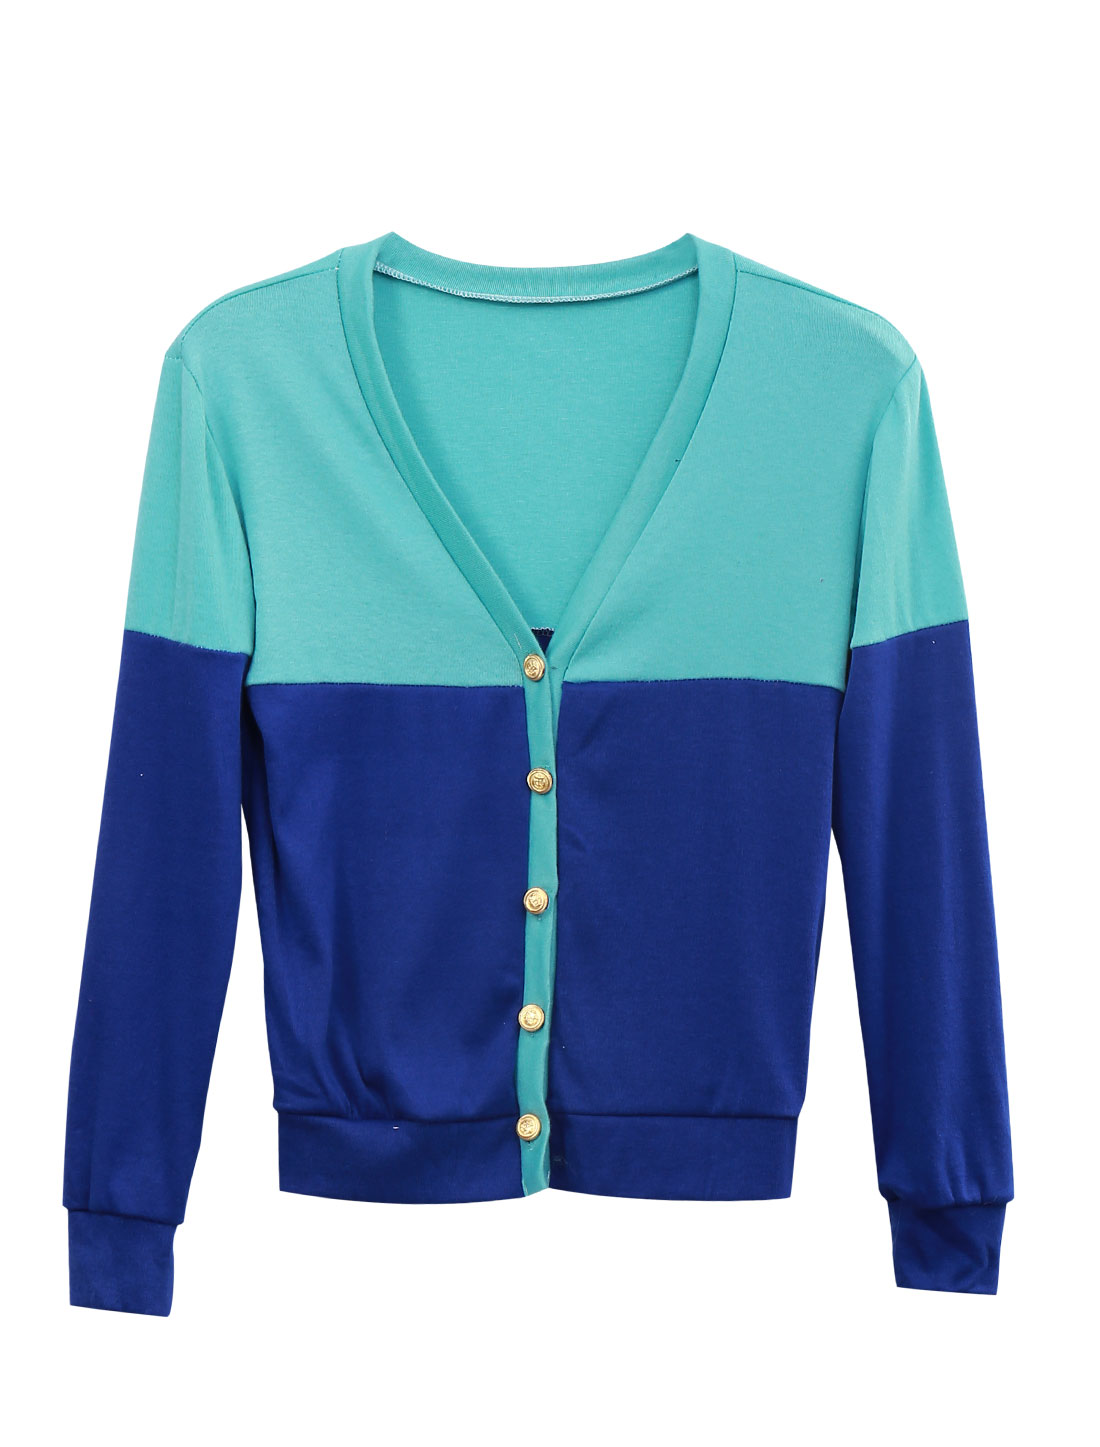 Lady Color Block Single Breasted Fashion Casual Cardigan Royal Blue Baby Blue XS